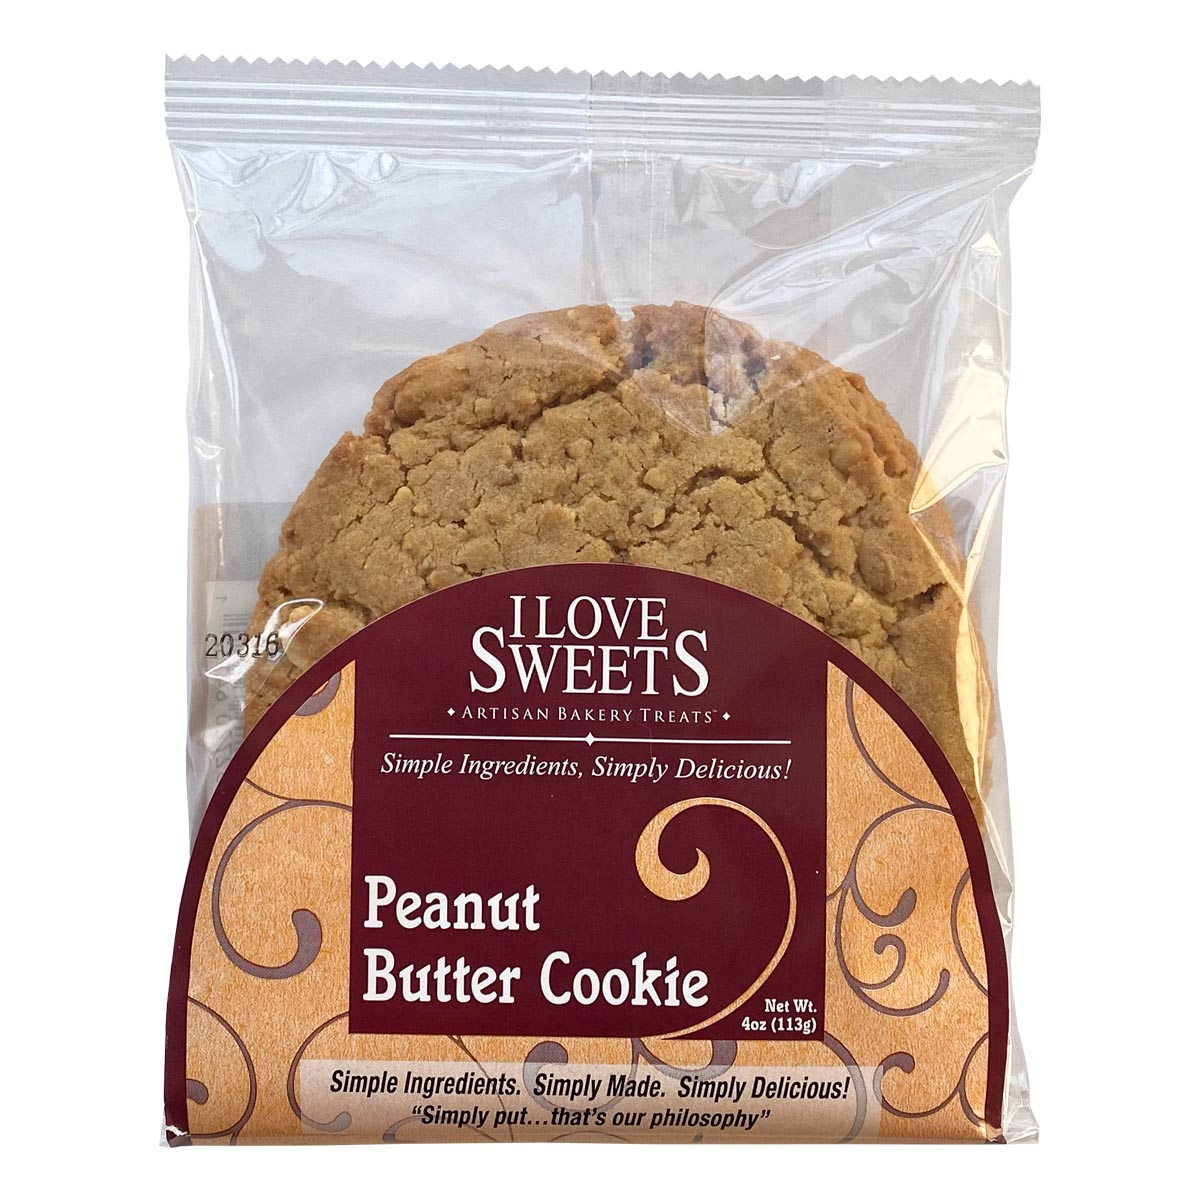 Peanut Butter Cookie Packages Square